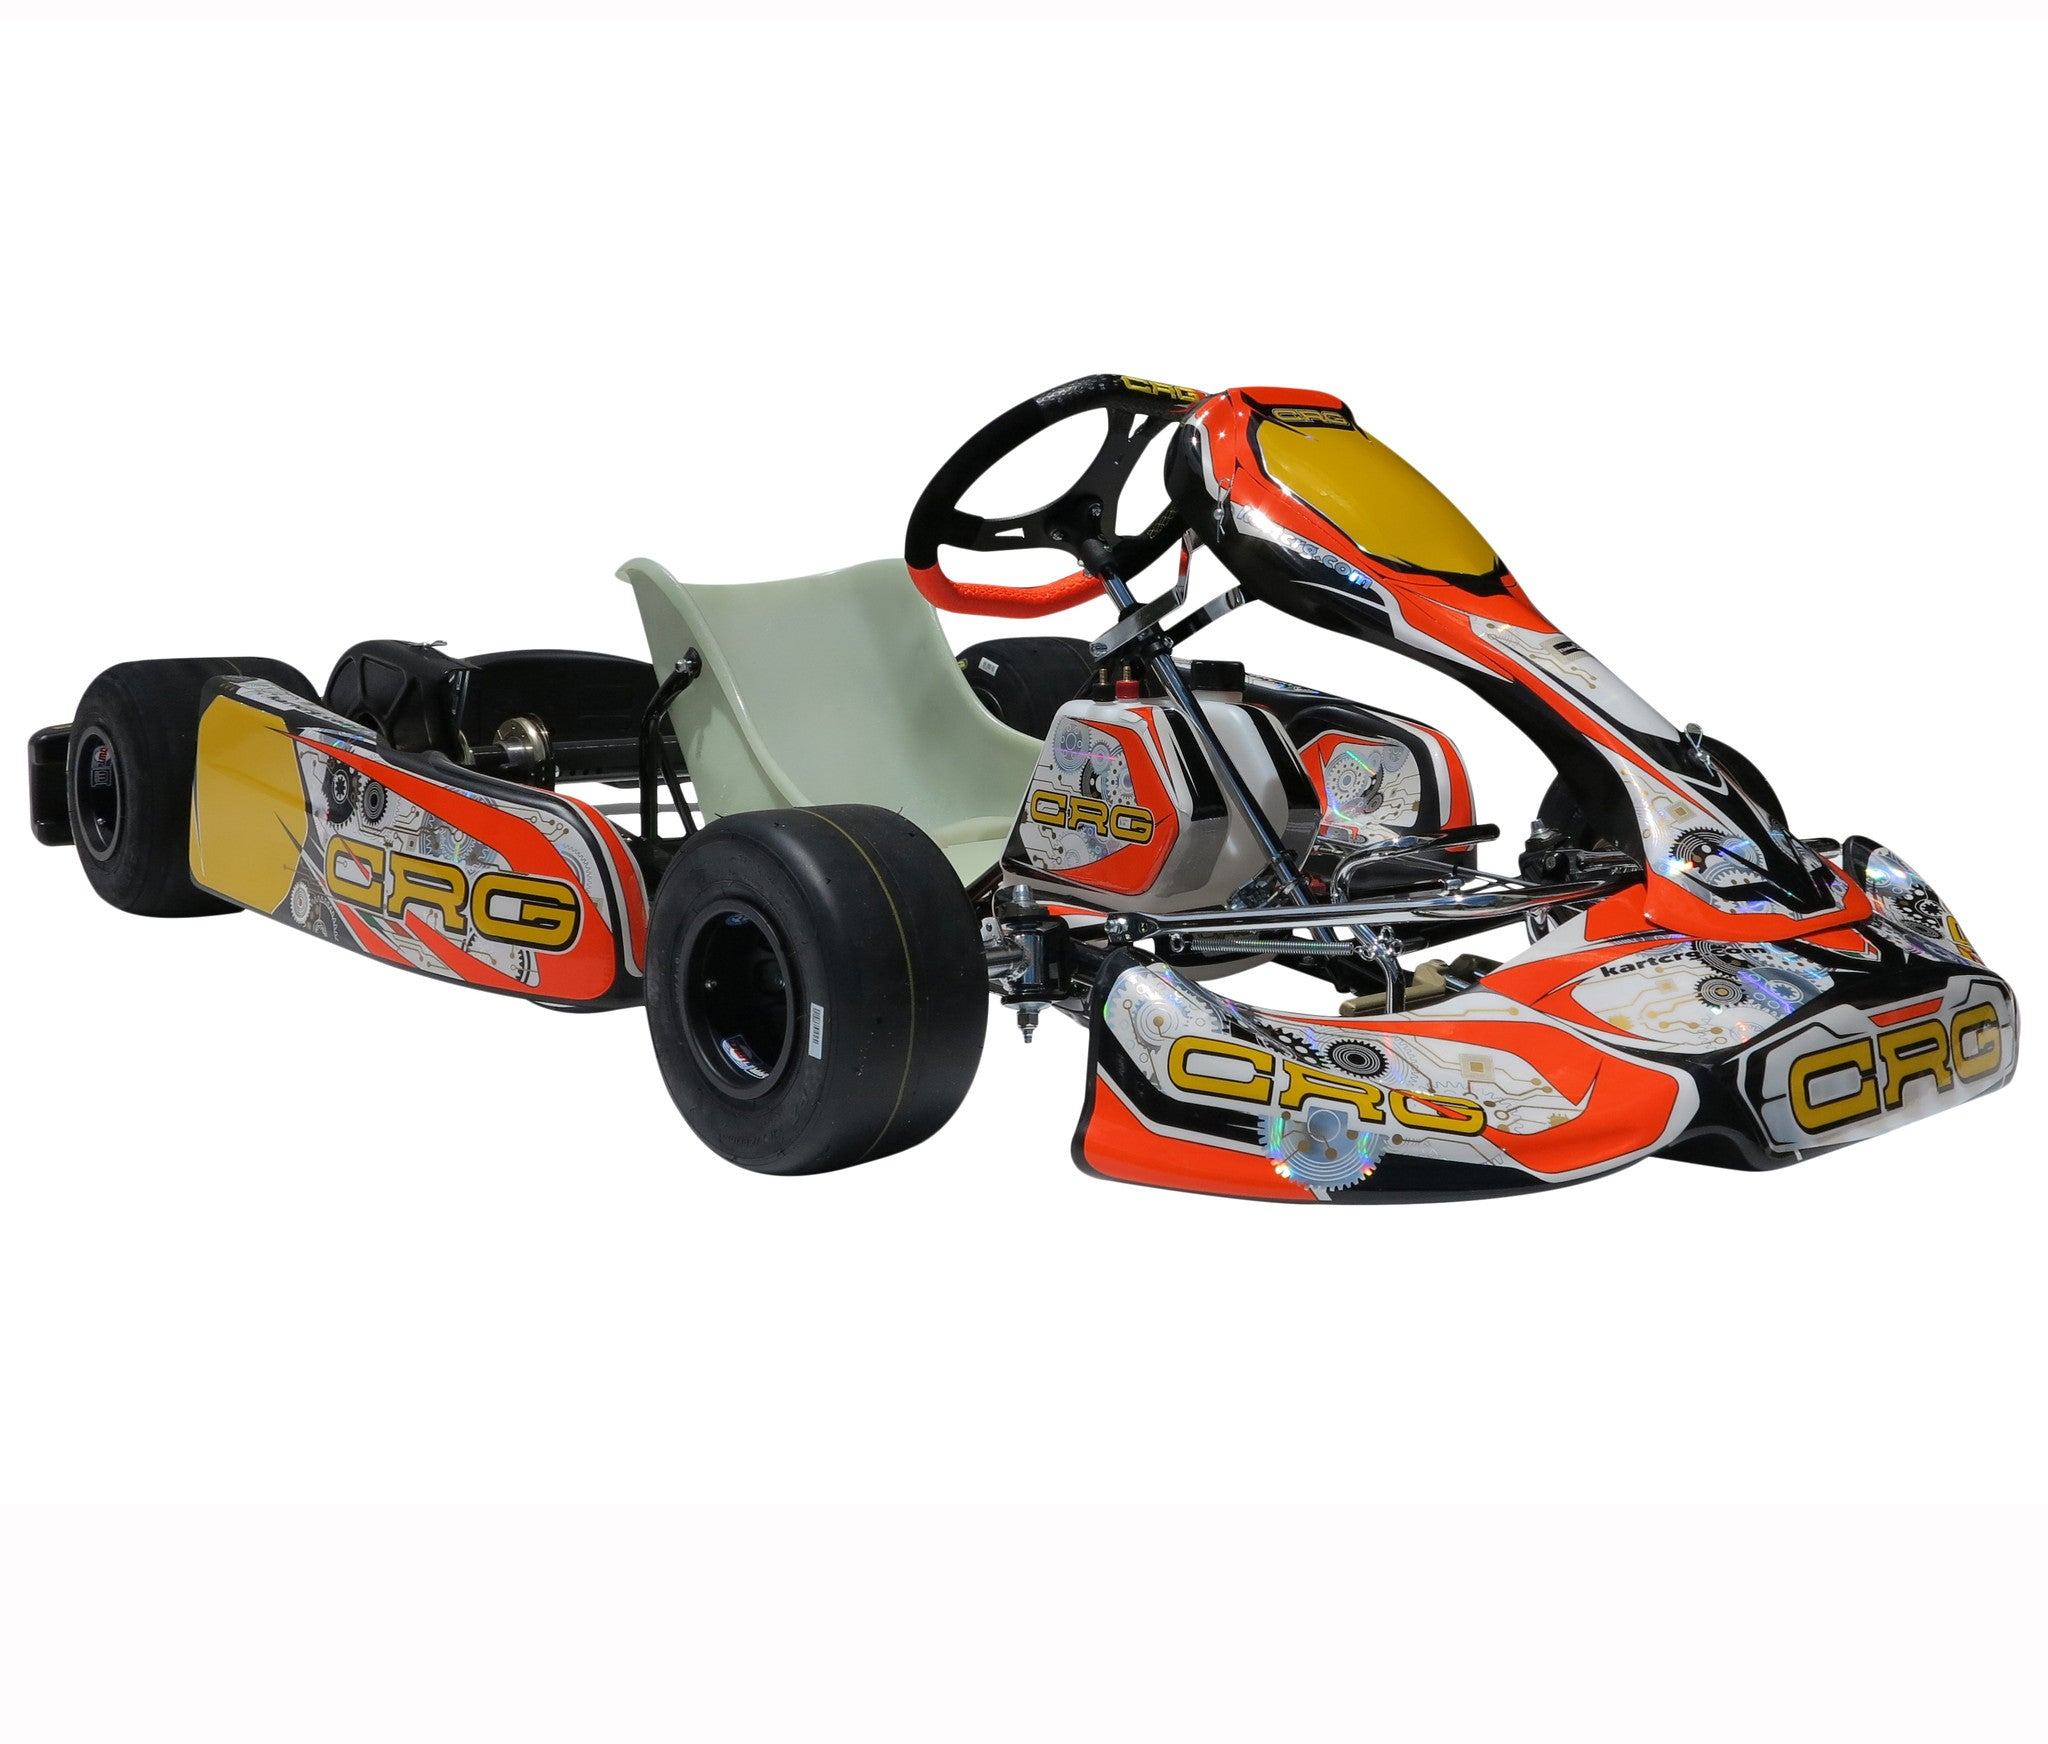 CRG FS-4 - BRIGGS AND STRATTON CHASSIS- CRG Magnesium Briggs and Stratton engine mount.